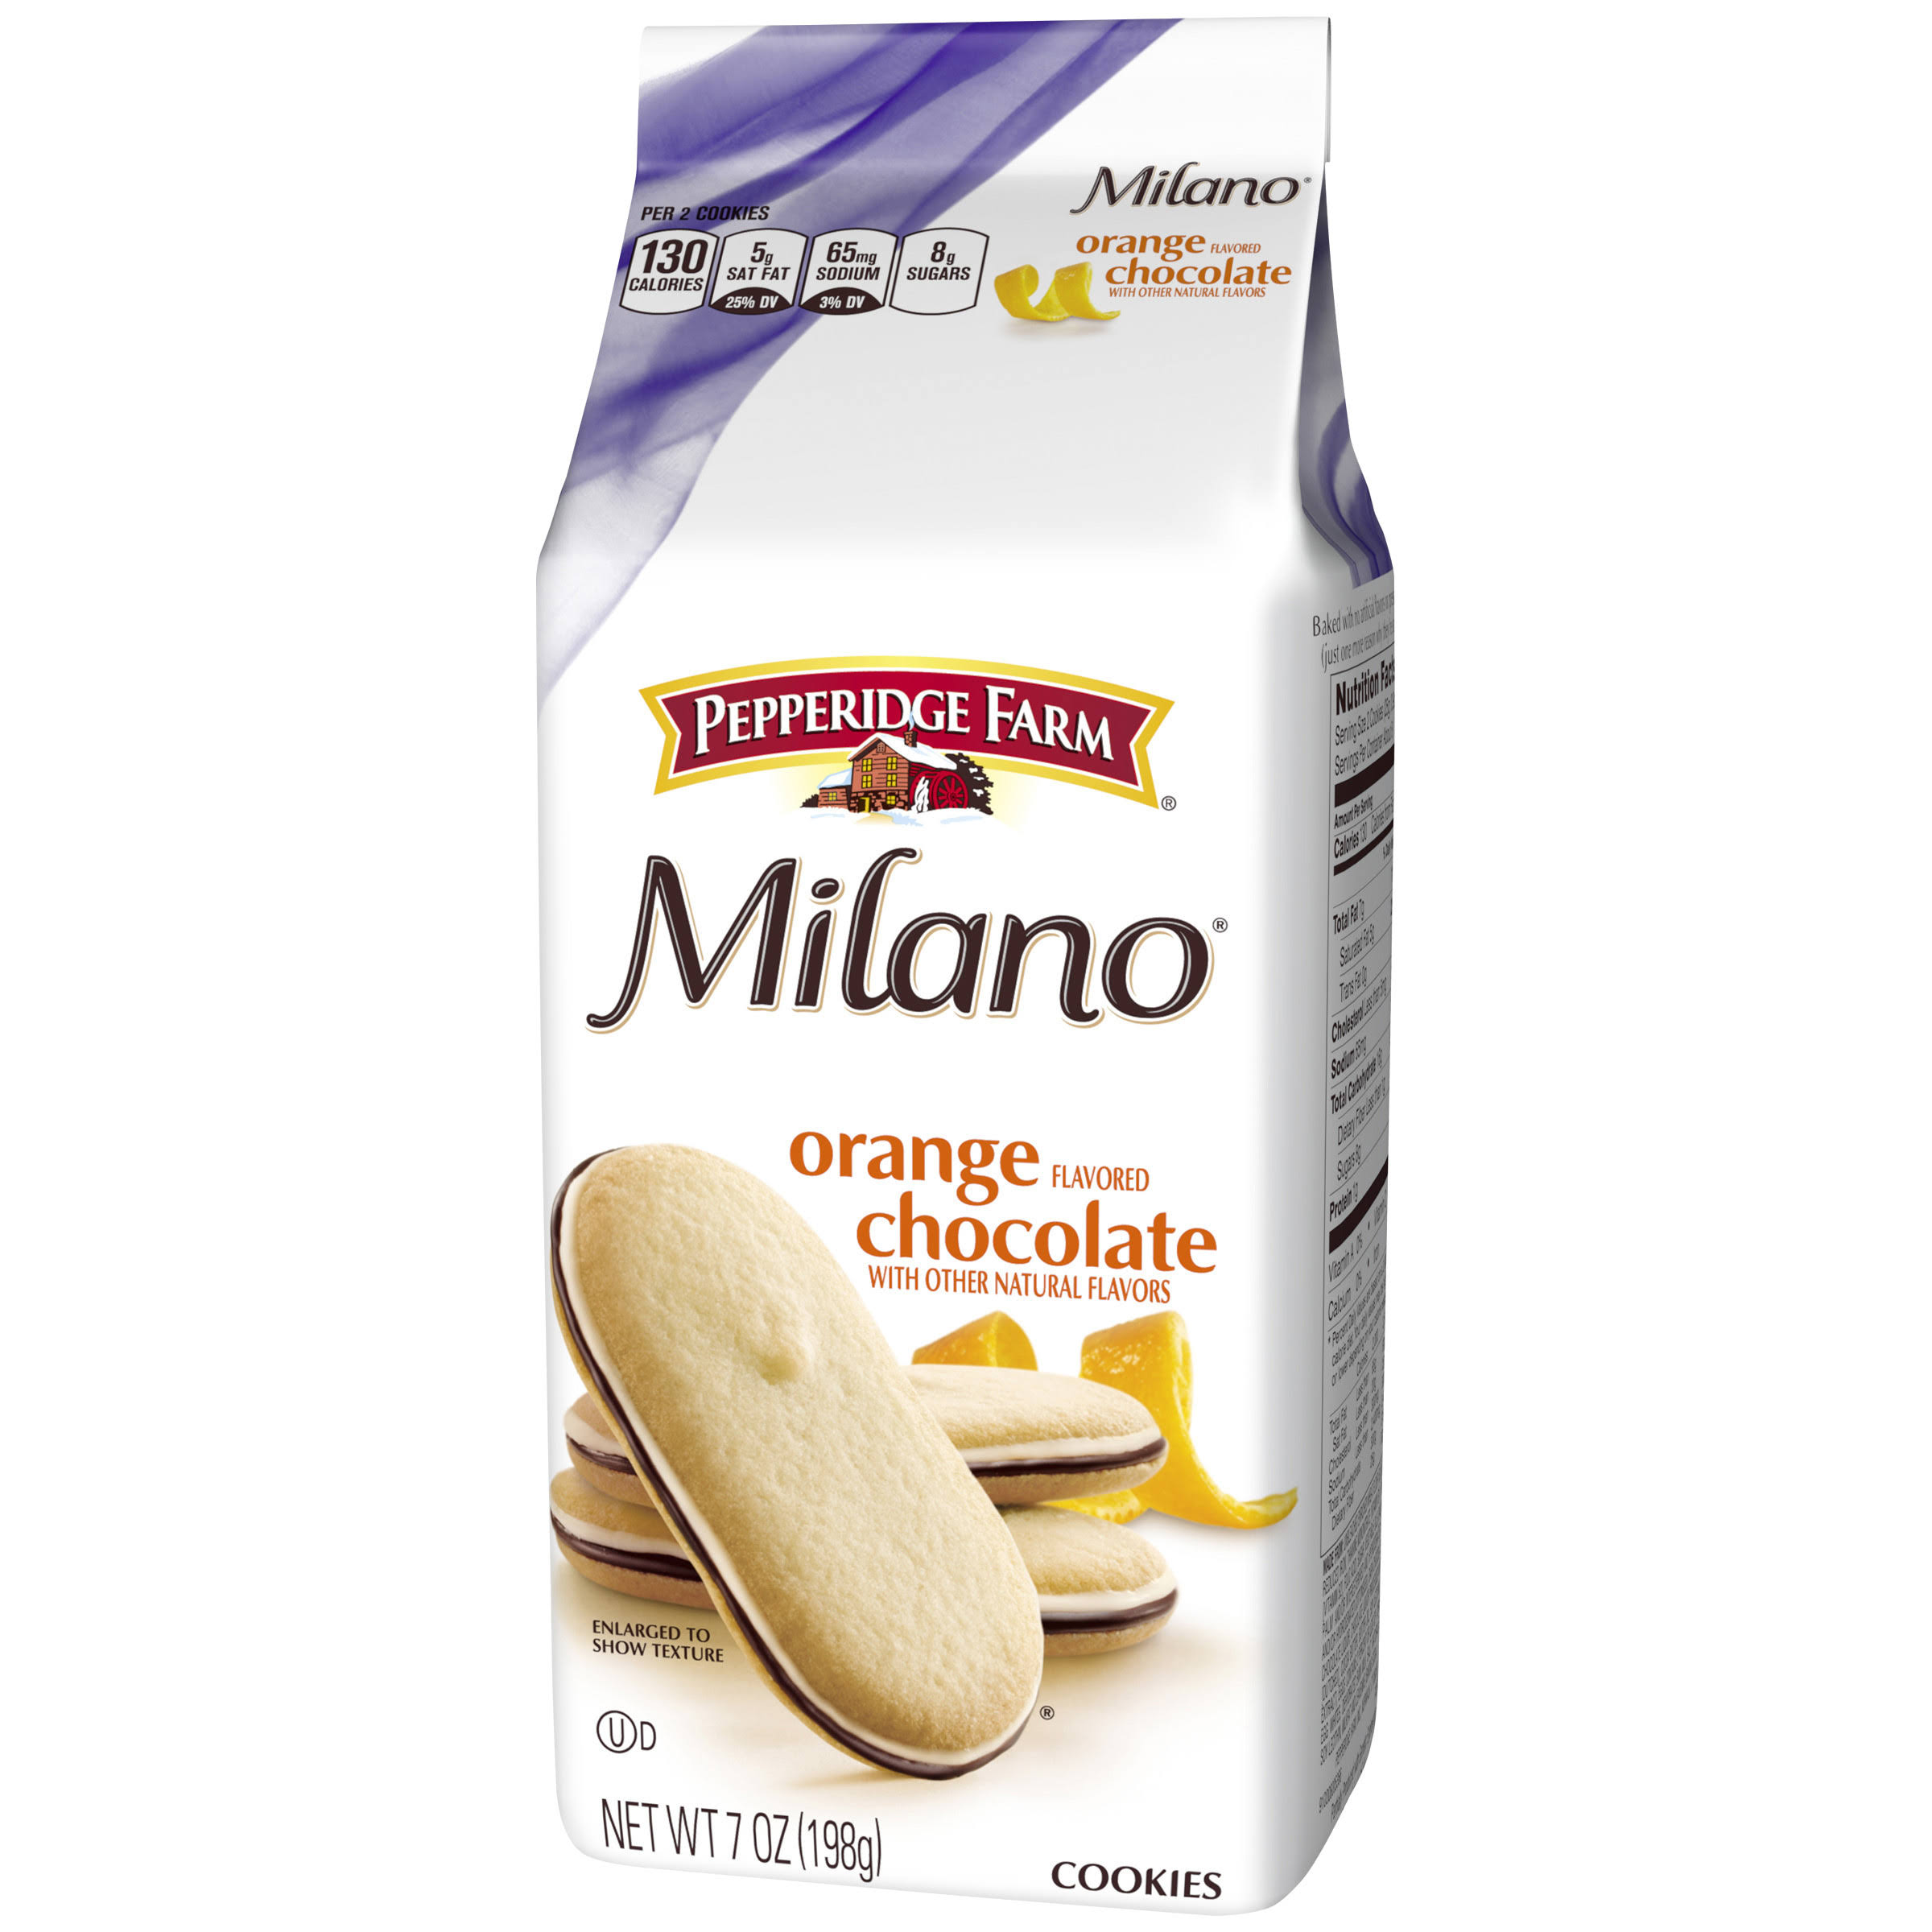 Pepperidge Farm Milano Cookies - 210ml, Orange